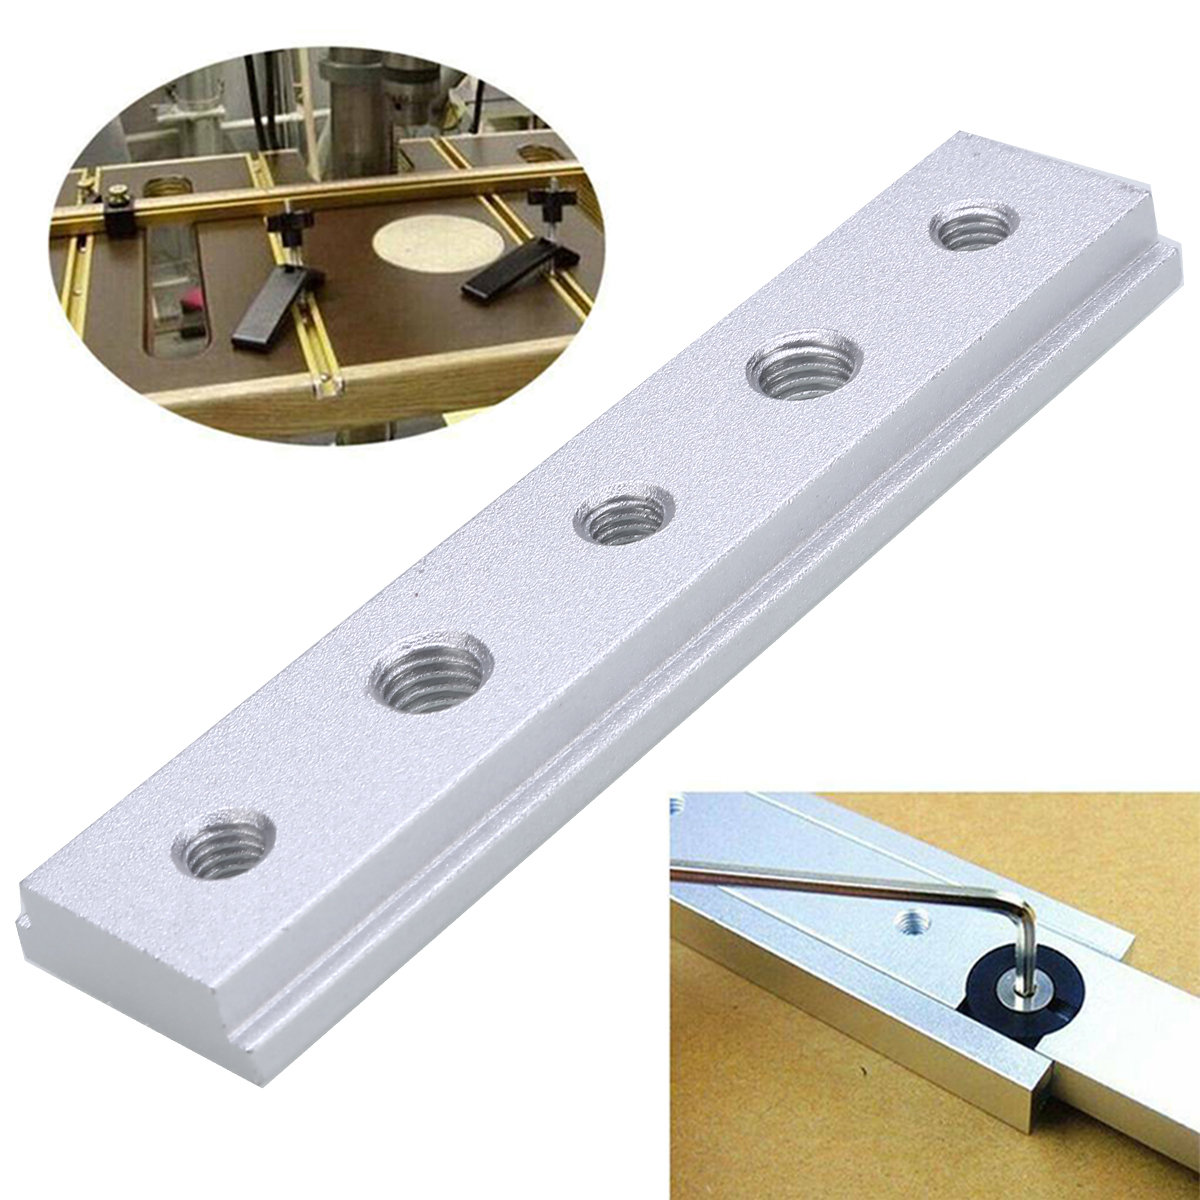 100mm Length Aluminium Alloy T-track Slot Miter Track Jig Fixture For Router Table Bandsaws Woodworking DIY Tool